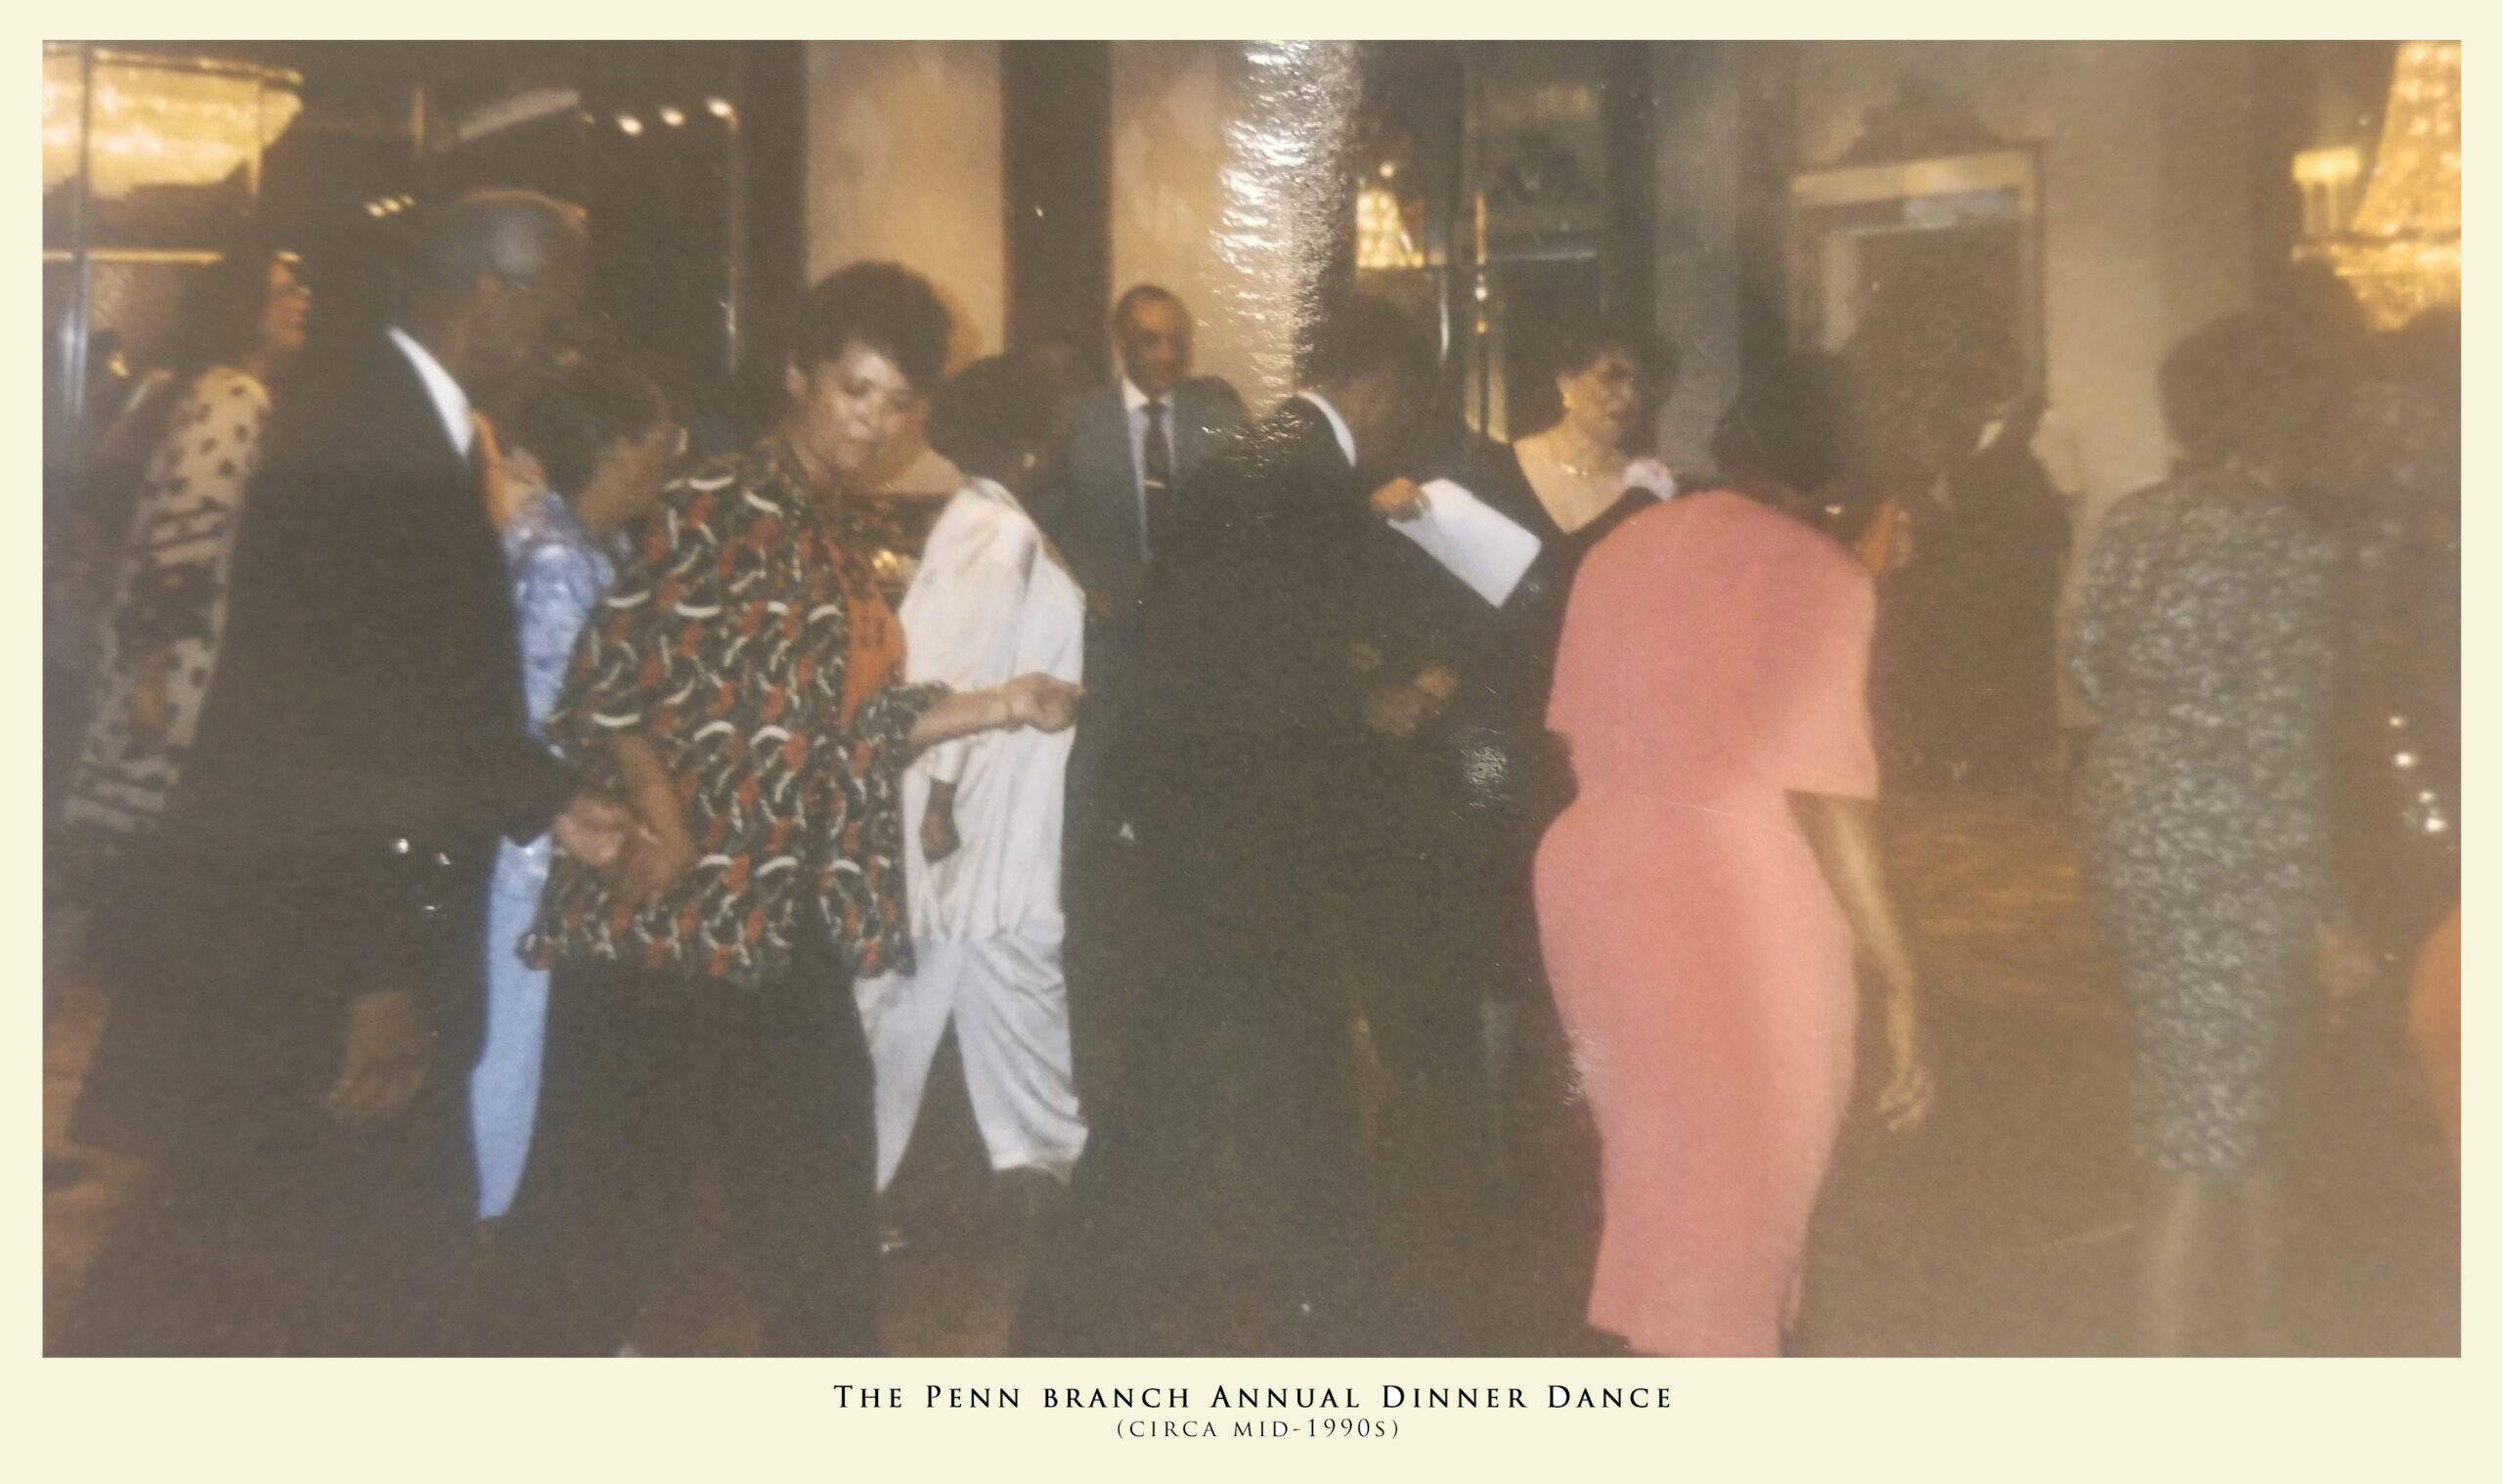 PBCA Dinner Dance-Early 1990s (credit Patricia Q Hall)